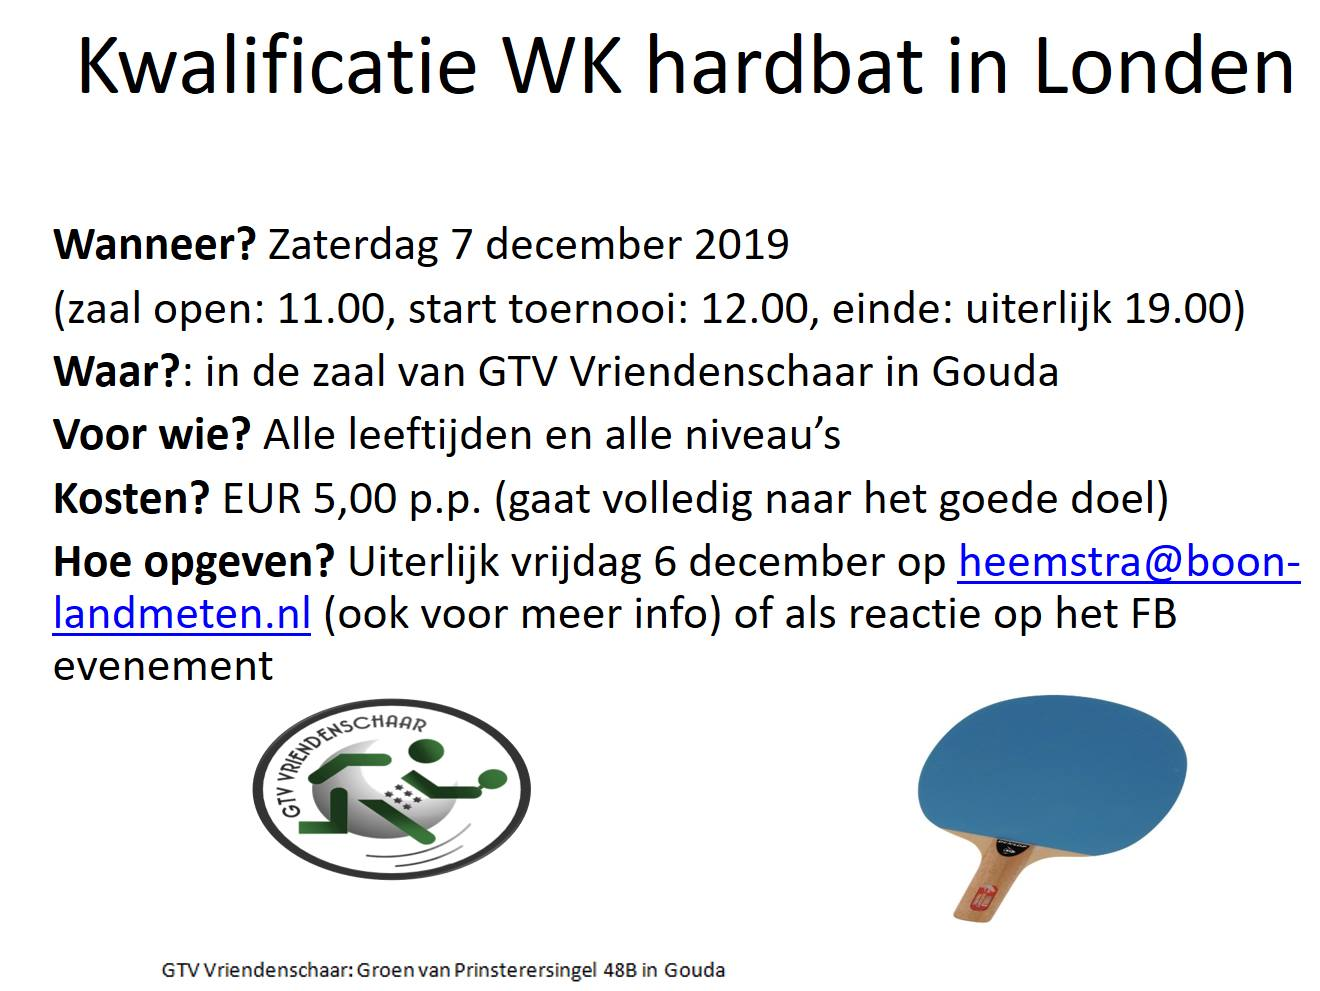 Kwalificatie WK Hardbat 7 december 2019